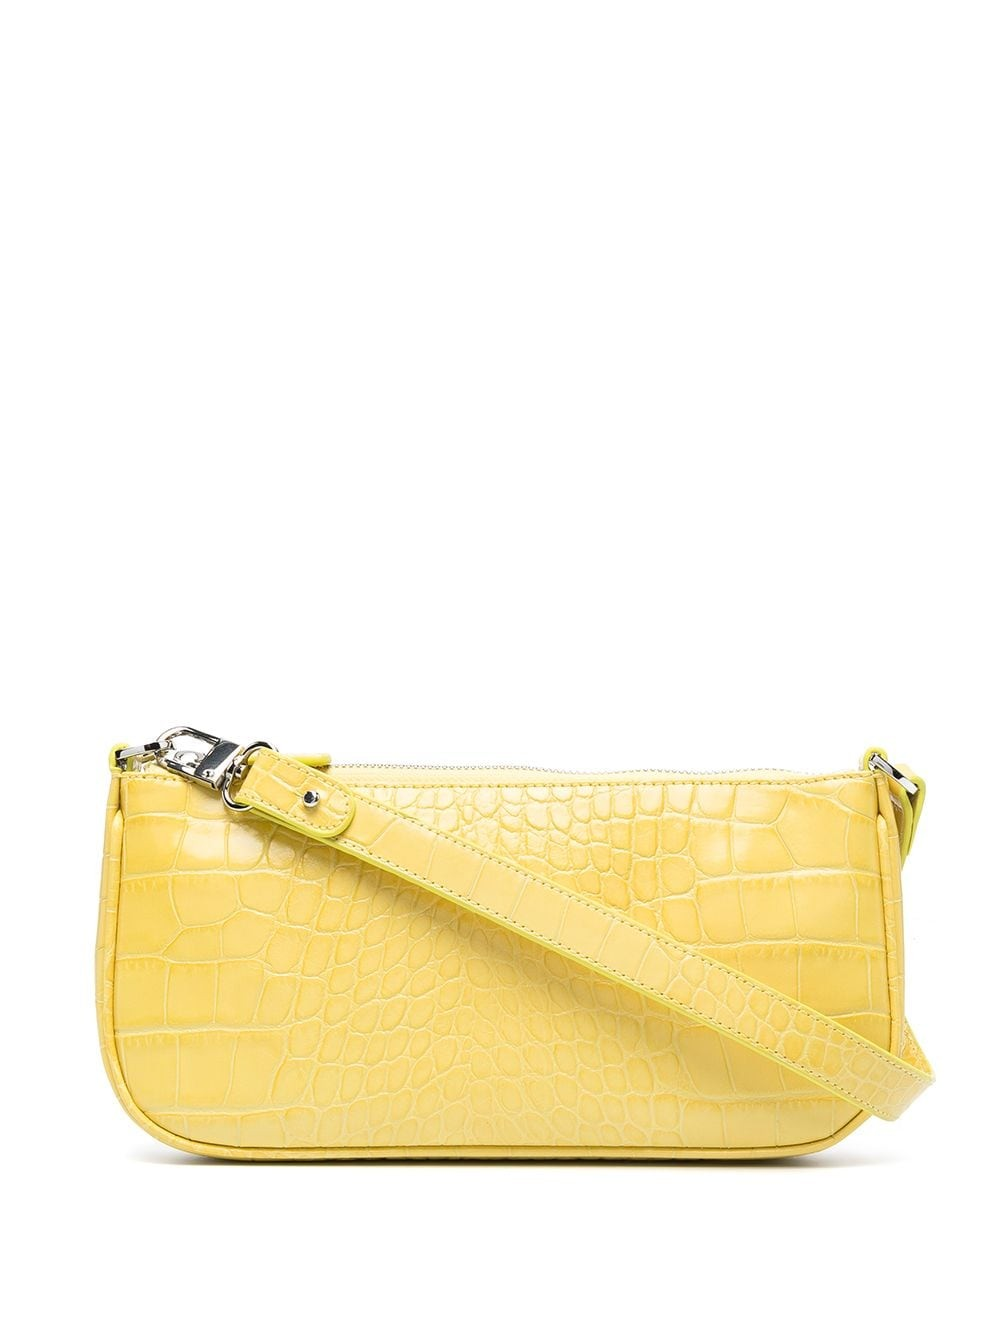 Rachel Custard Croco Embossed Leather